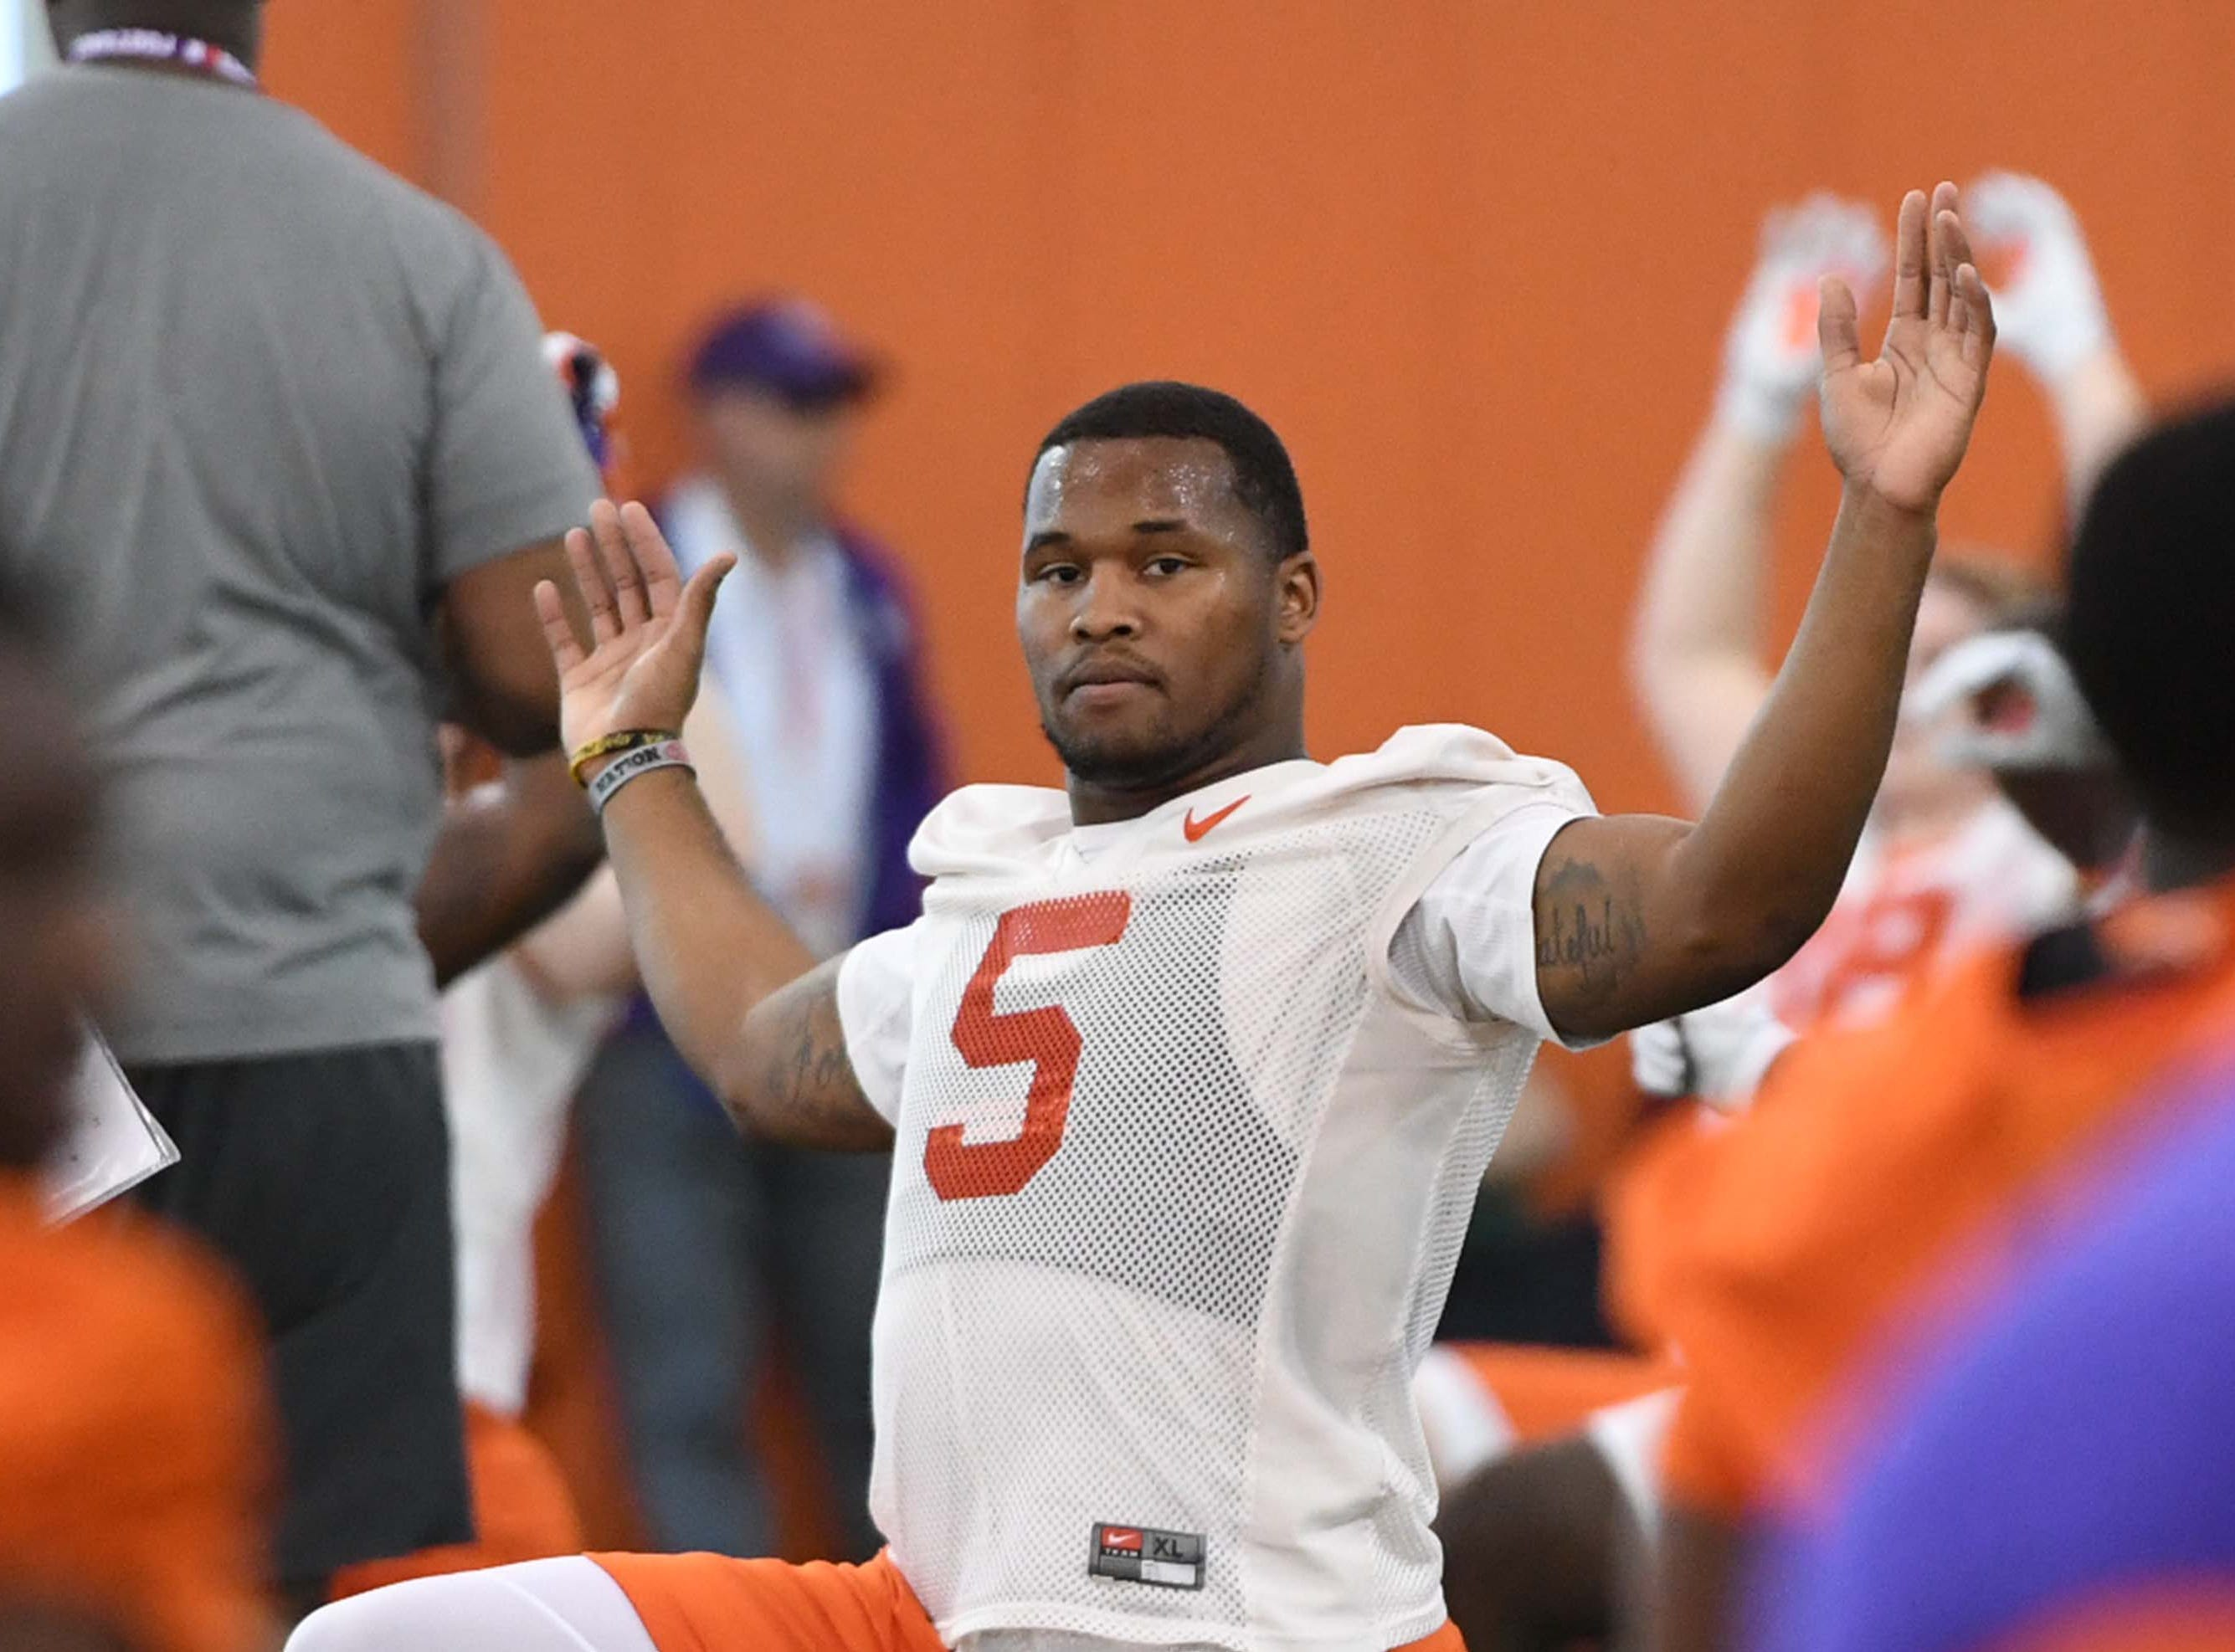 Clemson linebacker Shaq Smith (5) stretches during the first practice at the Clemson Indoor Practice Facility in Clemson Wednesday, February 27, 2019.